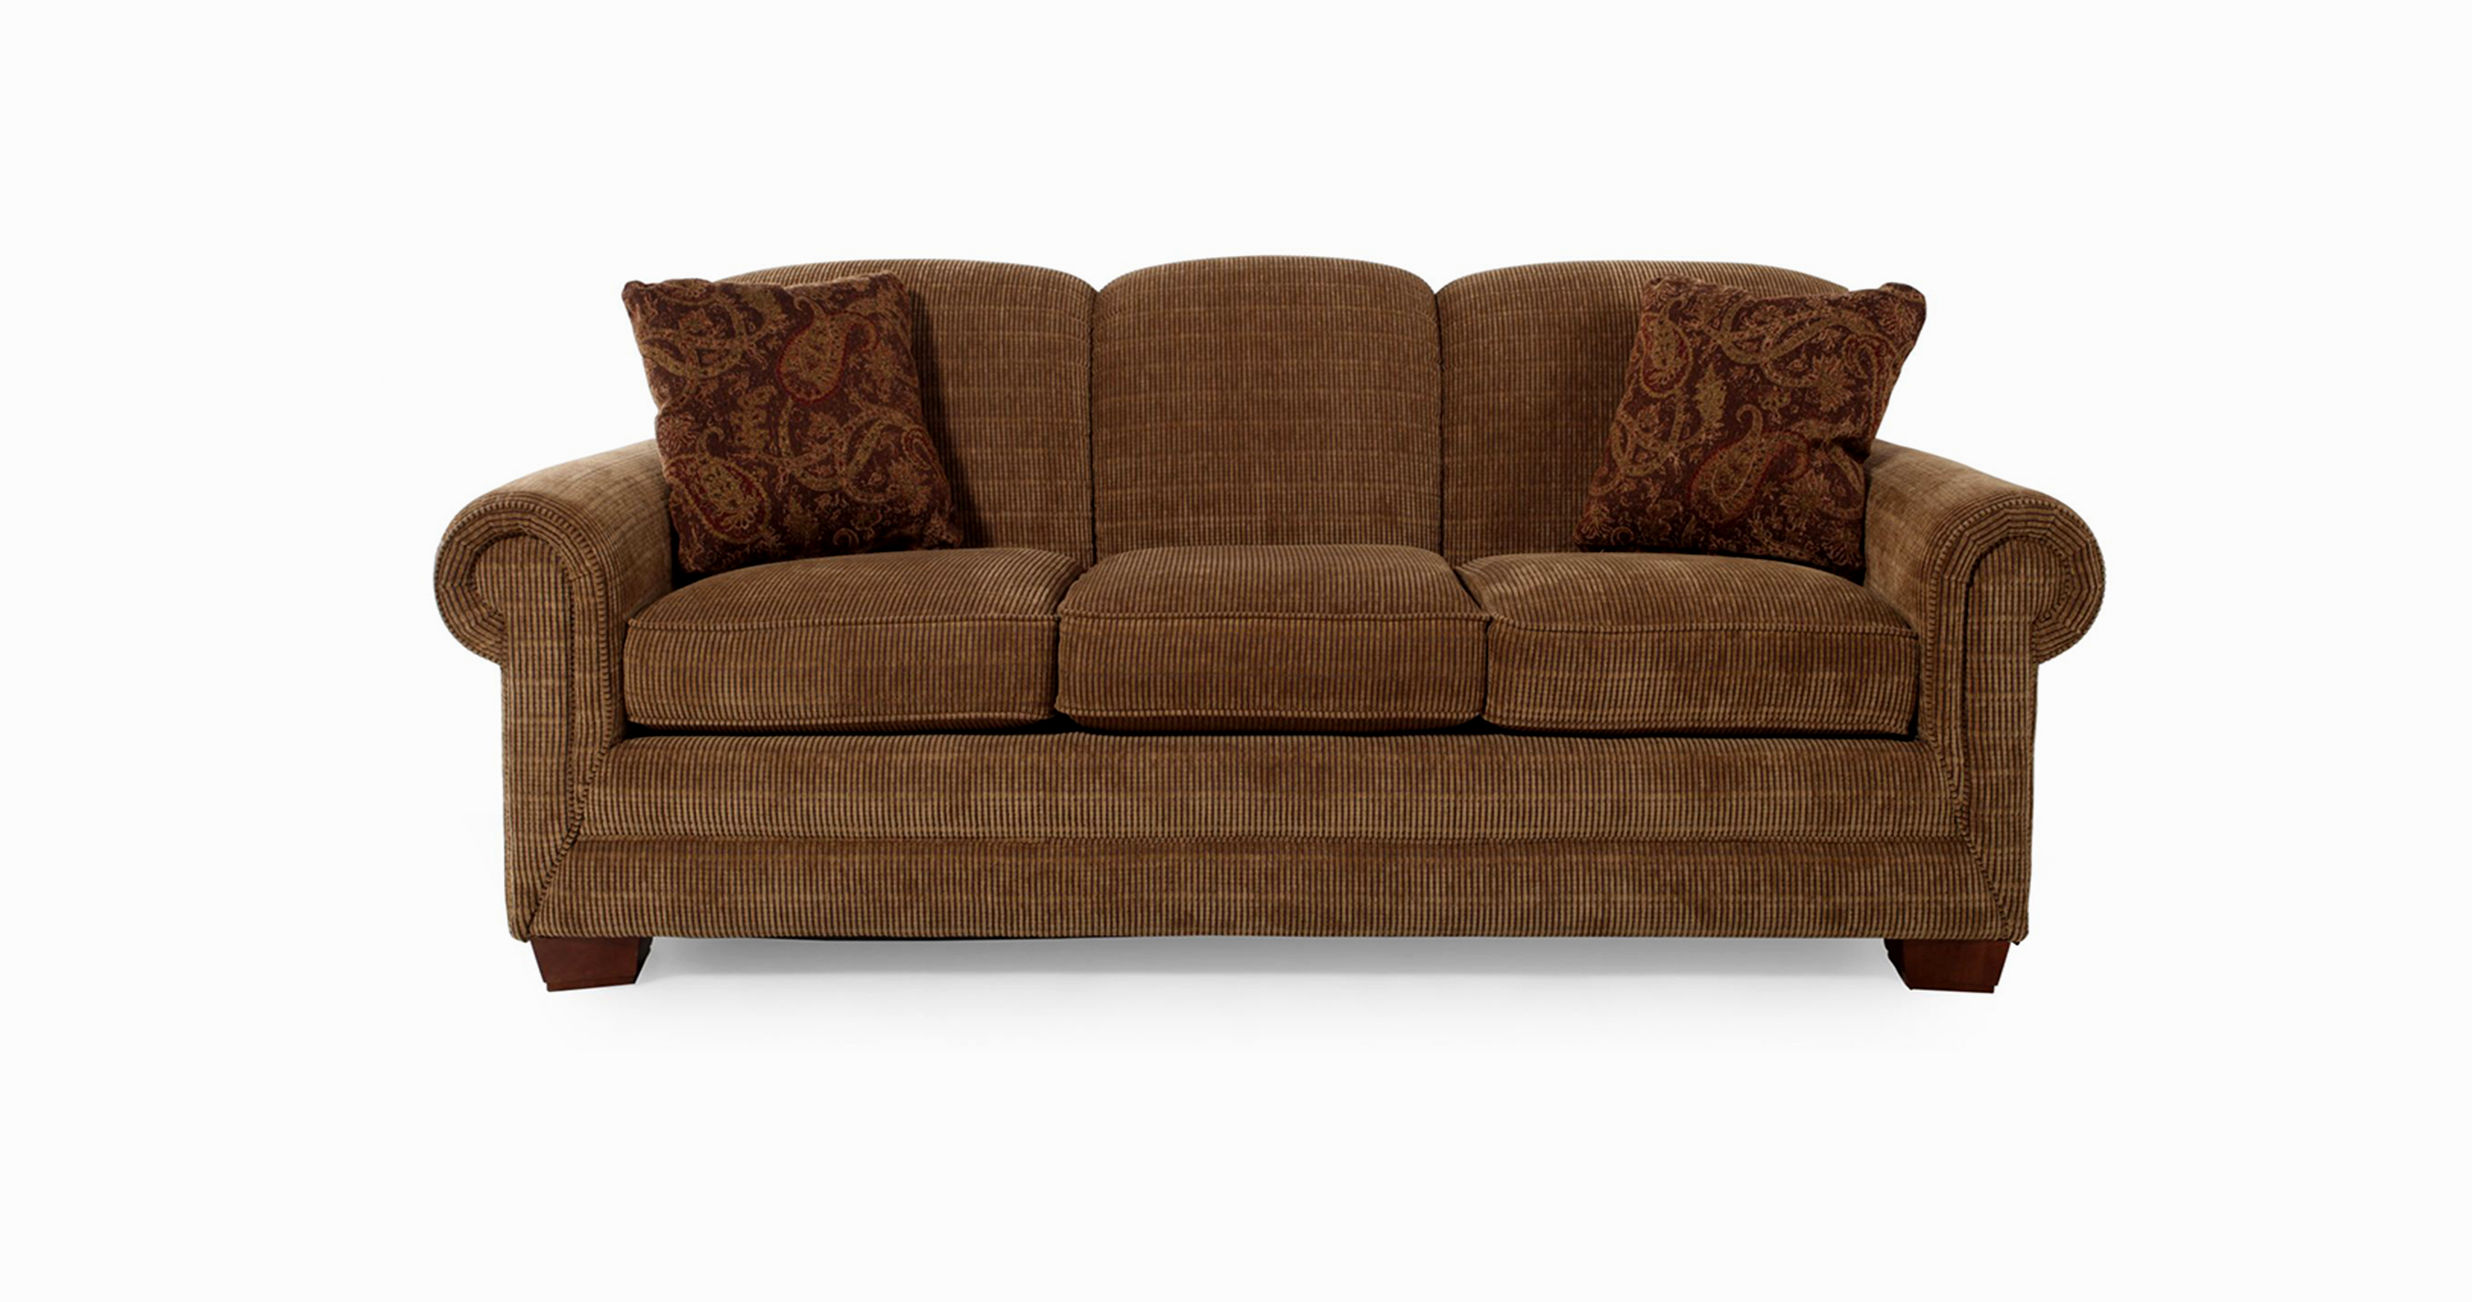 excellent best sofa bed gallery-Lovely Best sofa Bed Décor